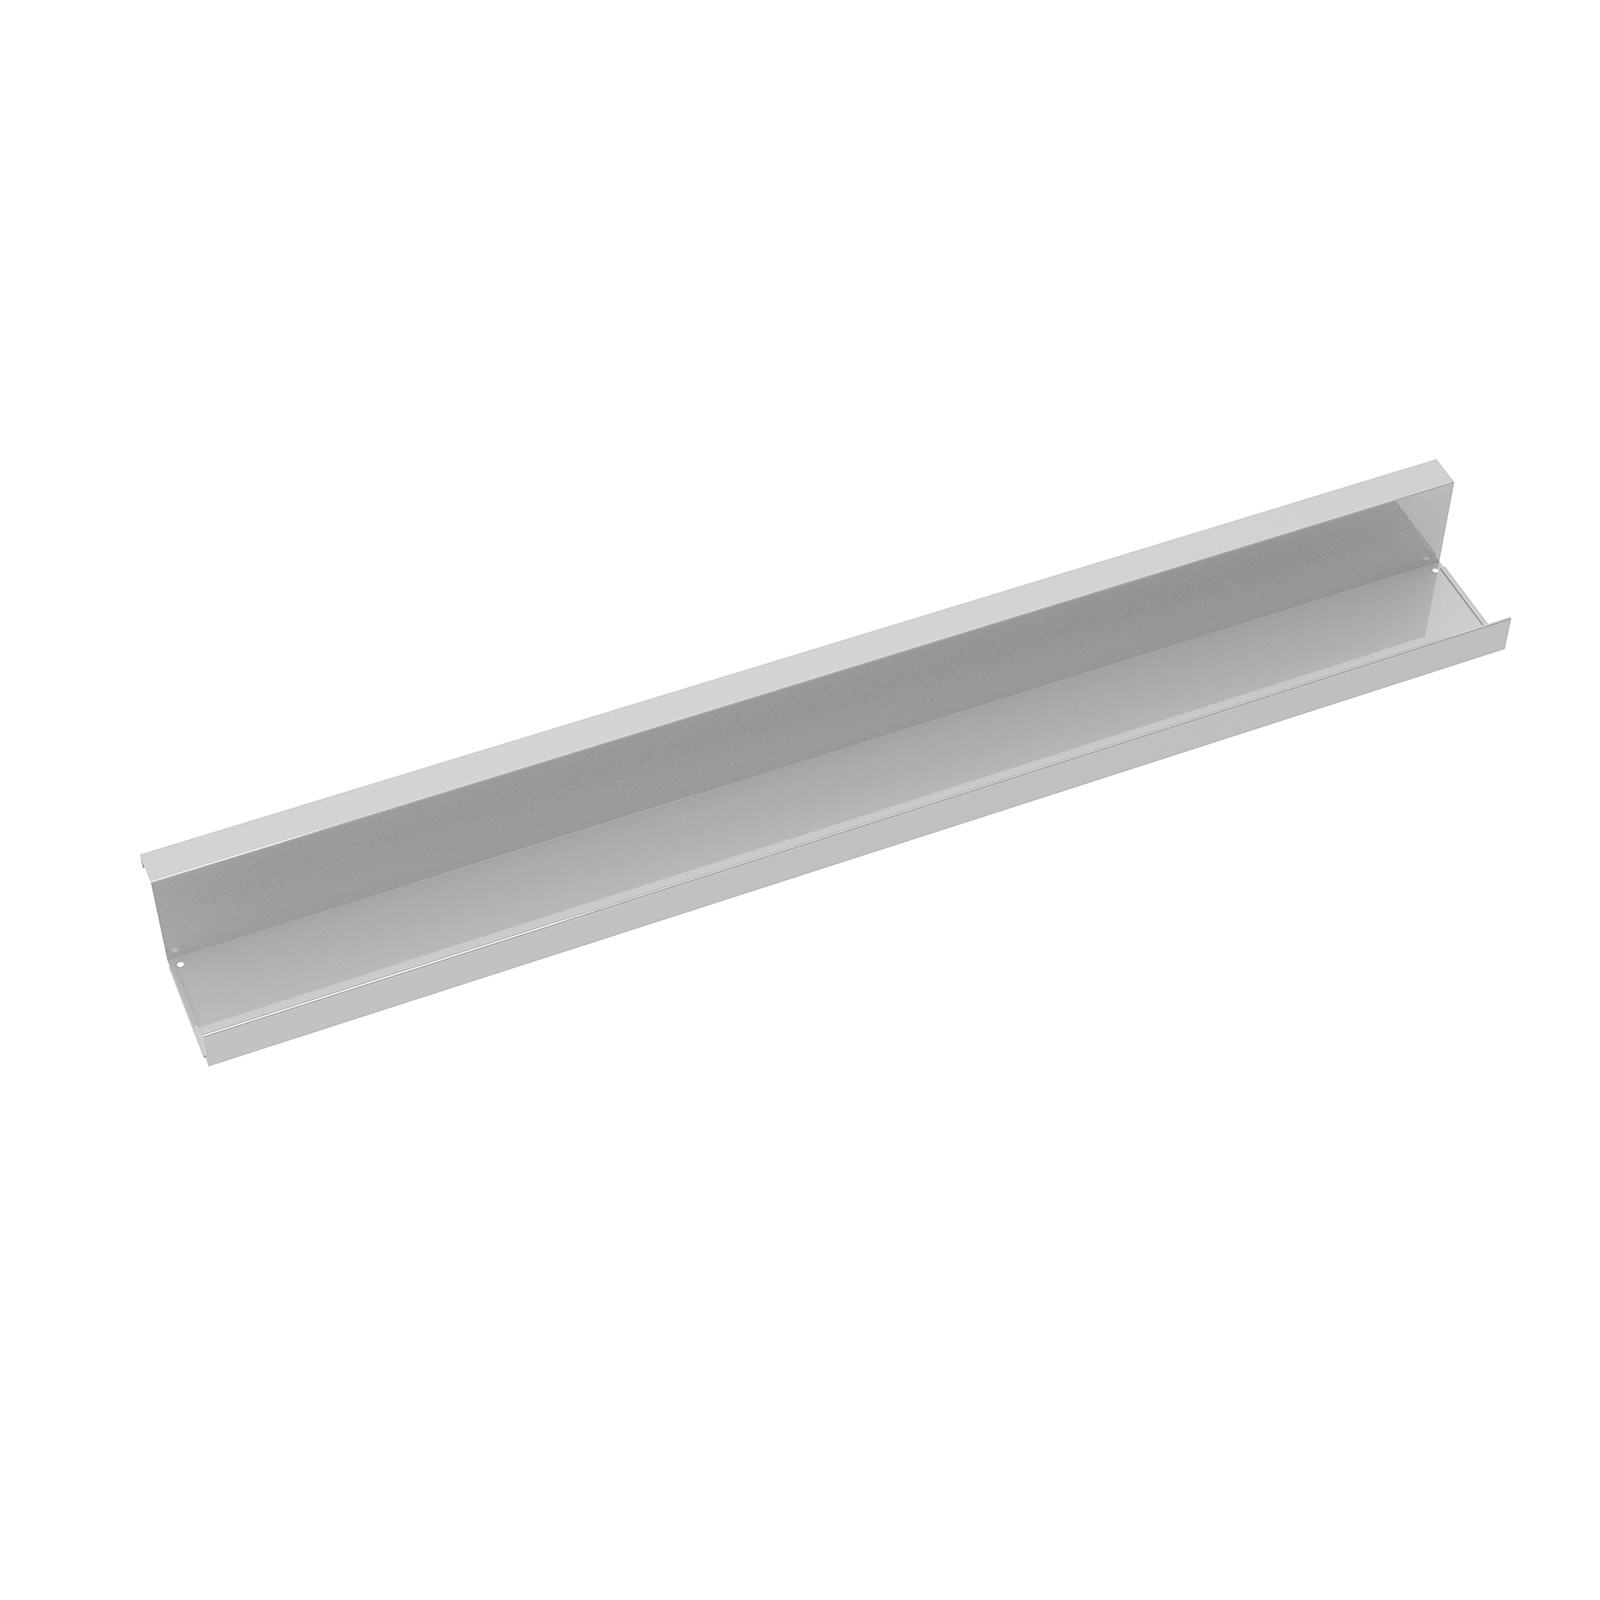 Cable Tidies Single cable tray for Adapt and Fuze desks